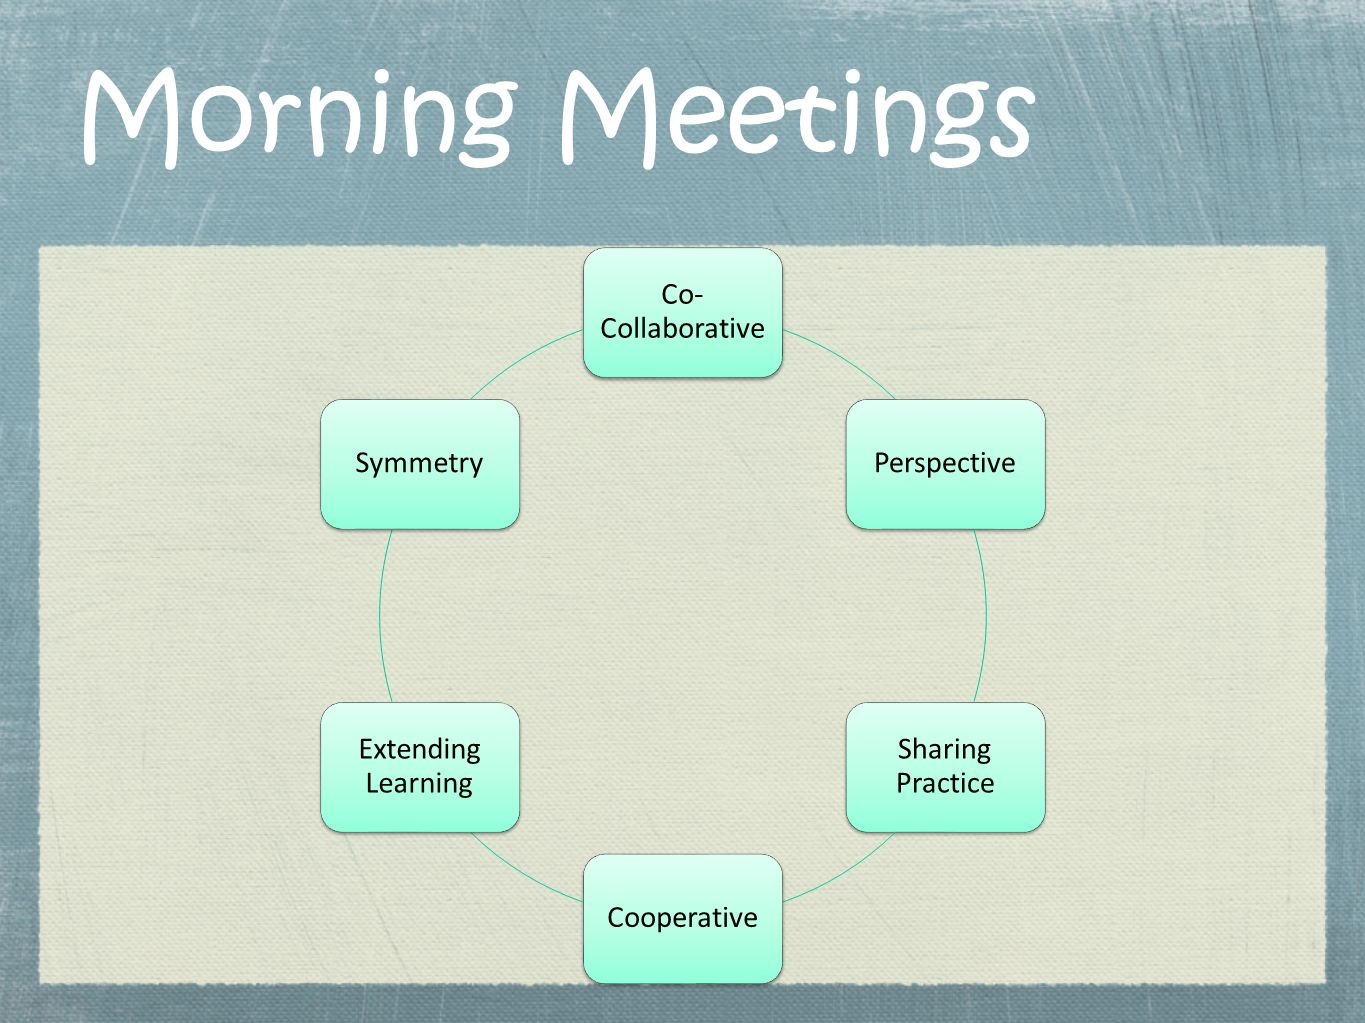 Morning Meetings Co-Collaborative Perspective Sharing Practice